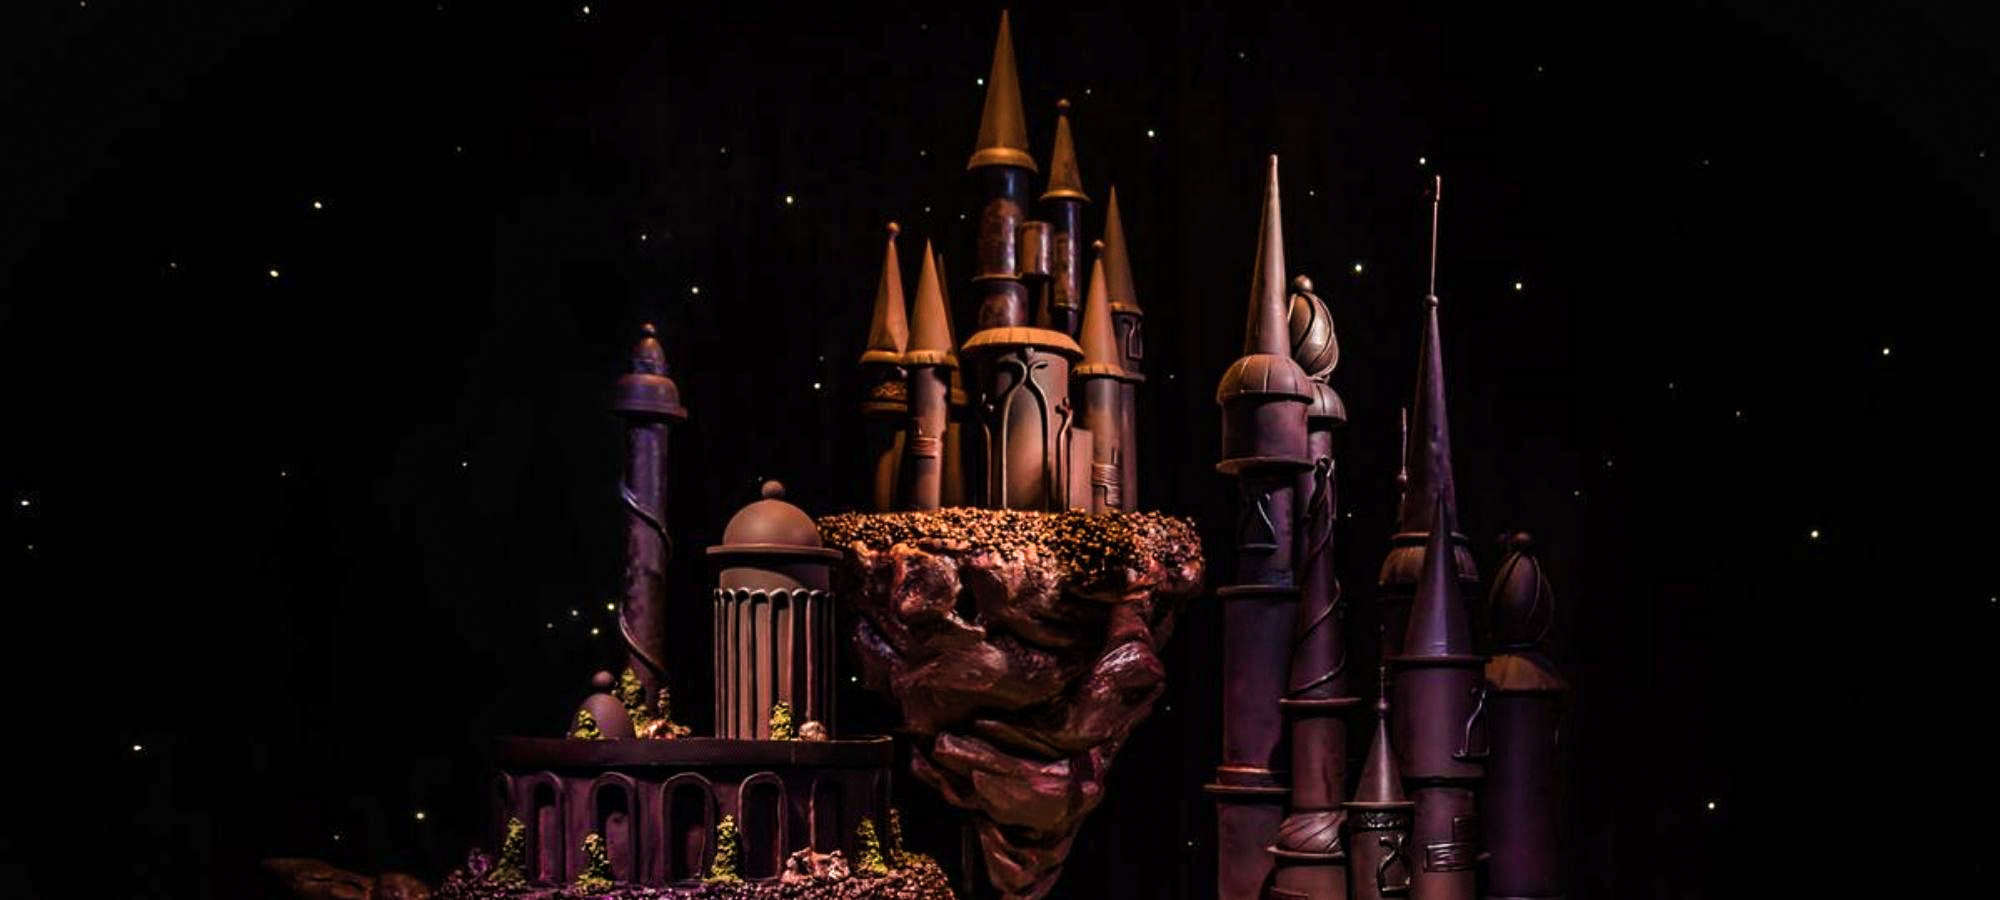 Chocolate castle sculpture with multiple towers and spires on display in a dark room in Chocolate Nation, Antwerp